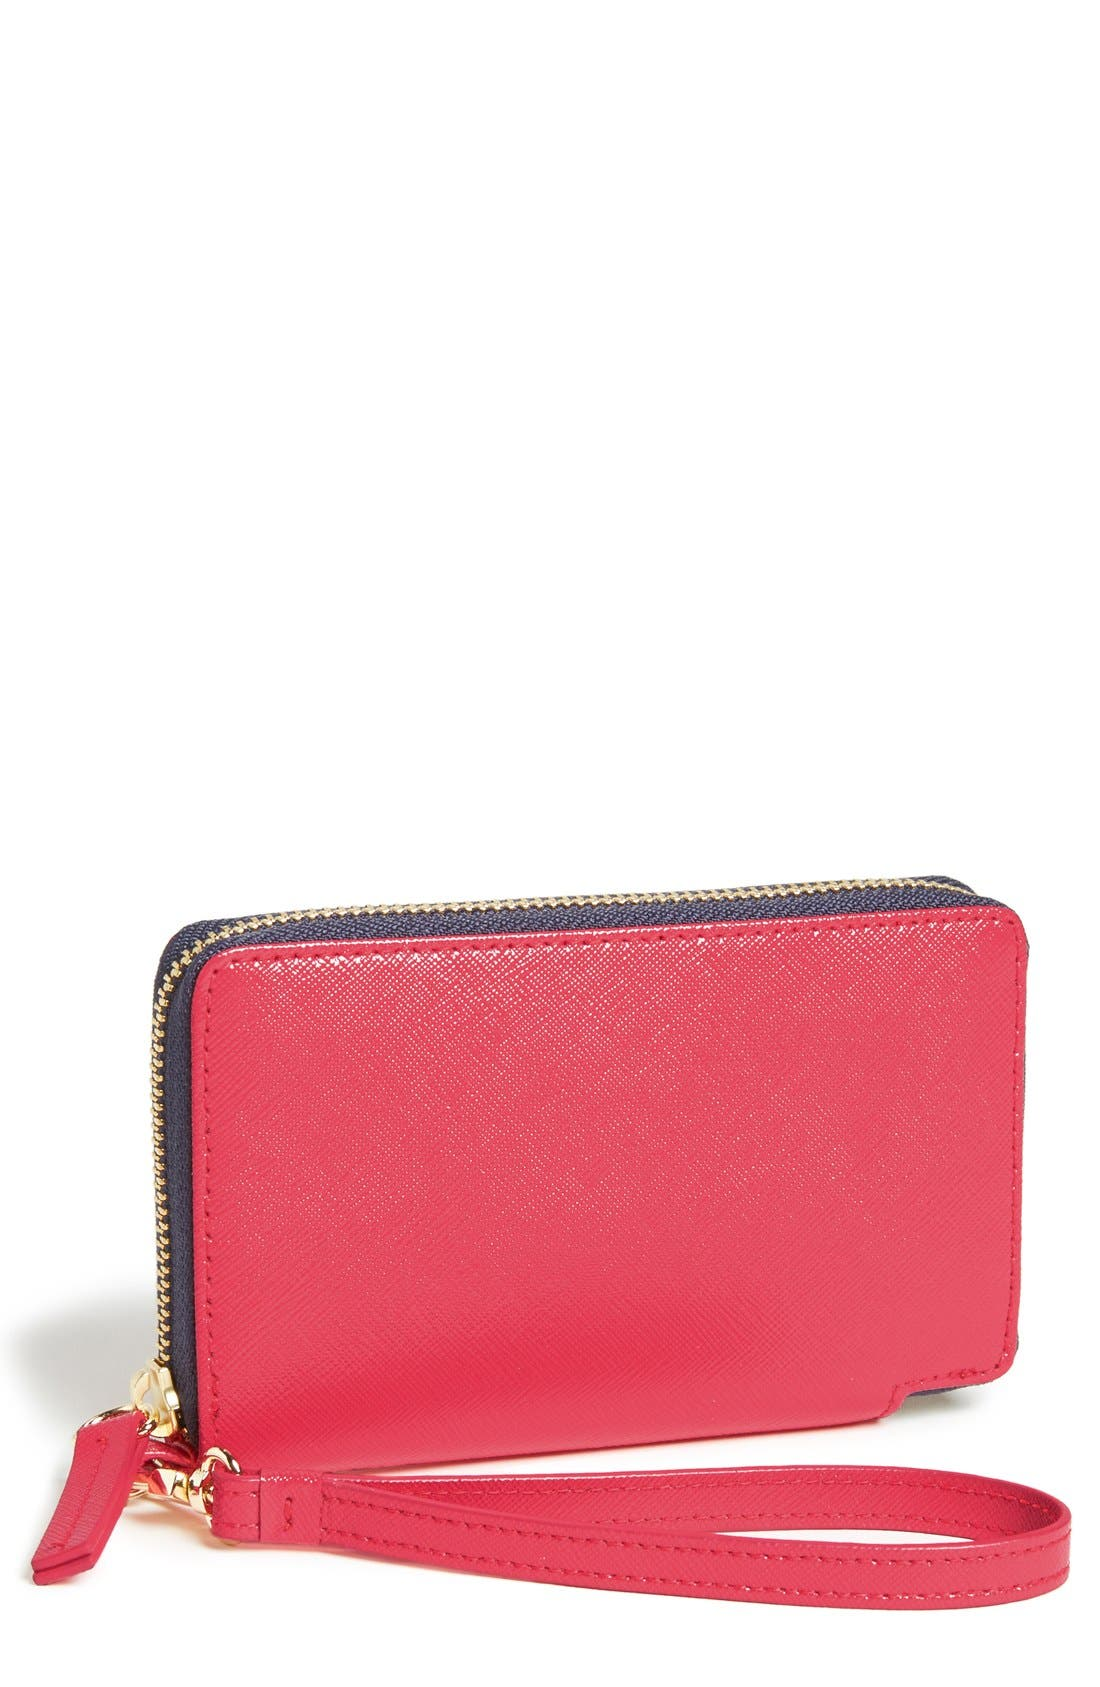 Main Image - Halogen® 'Cassie' Saffiano Leather Phone Wallet